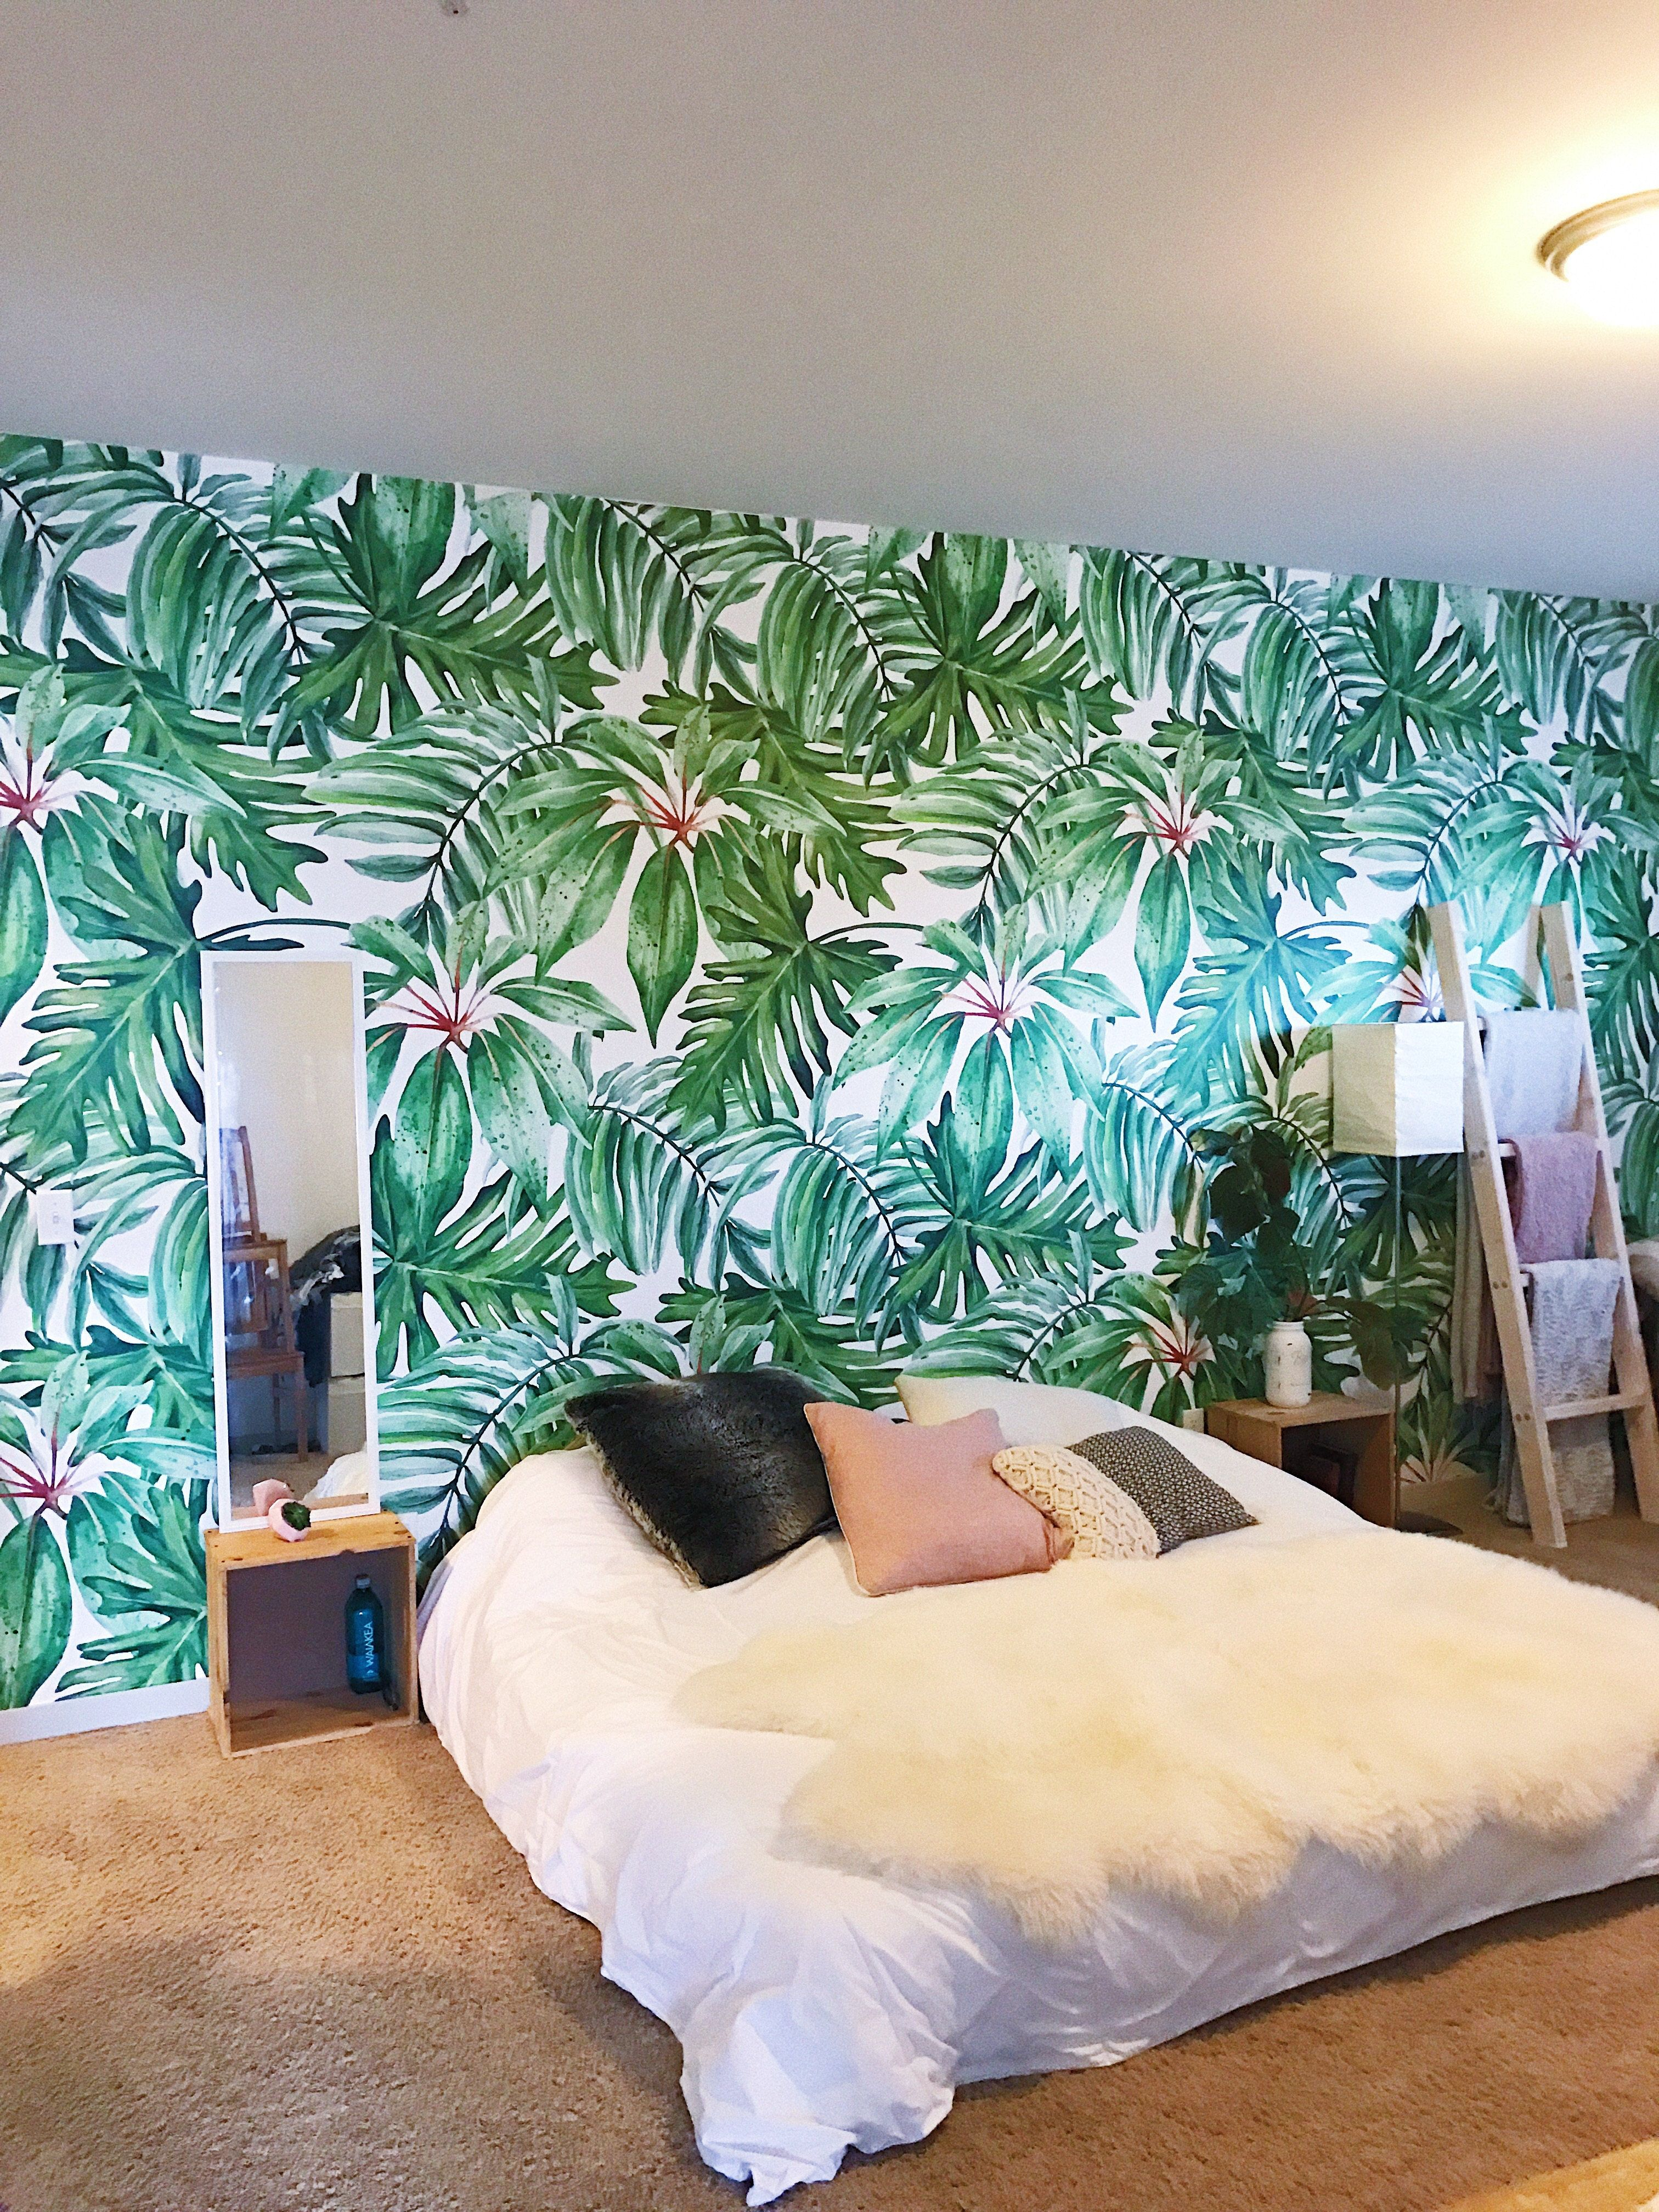 Banana Leaves Are A Great Thing To Sleep Under Peel Stick Wallpaper With This Green Motive Wallpaper Walls Bedroom Trees Wallpaper Bedroom Wallpaper Bedroom